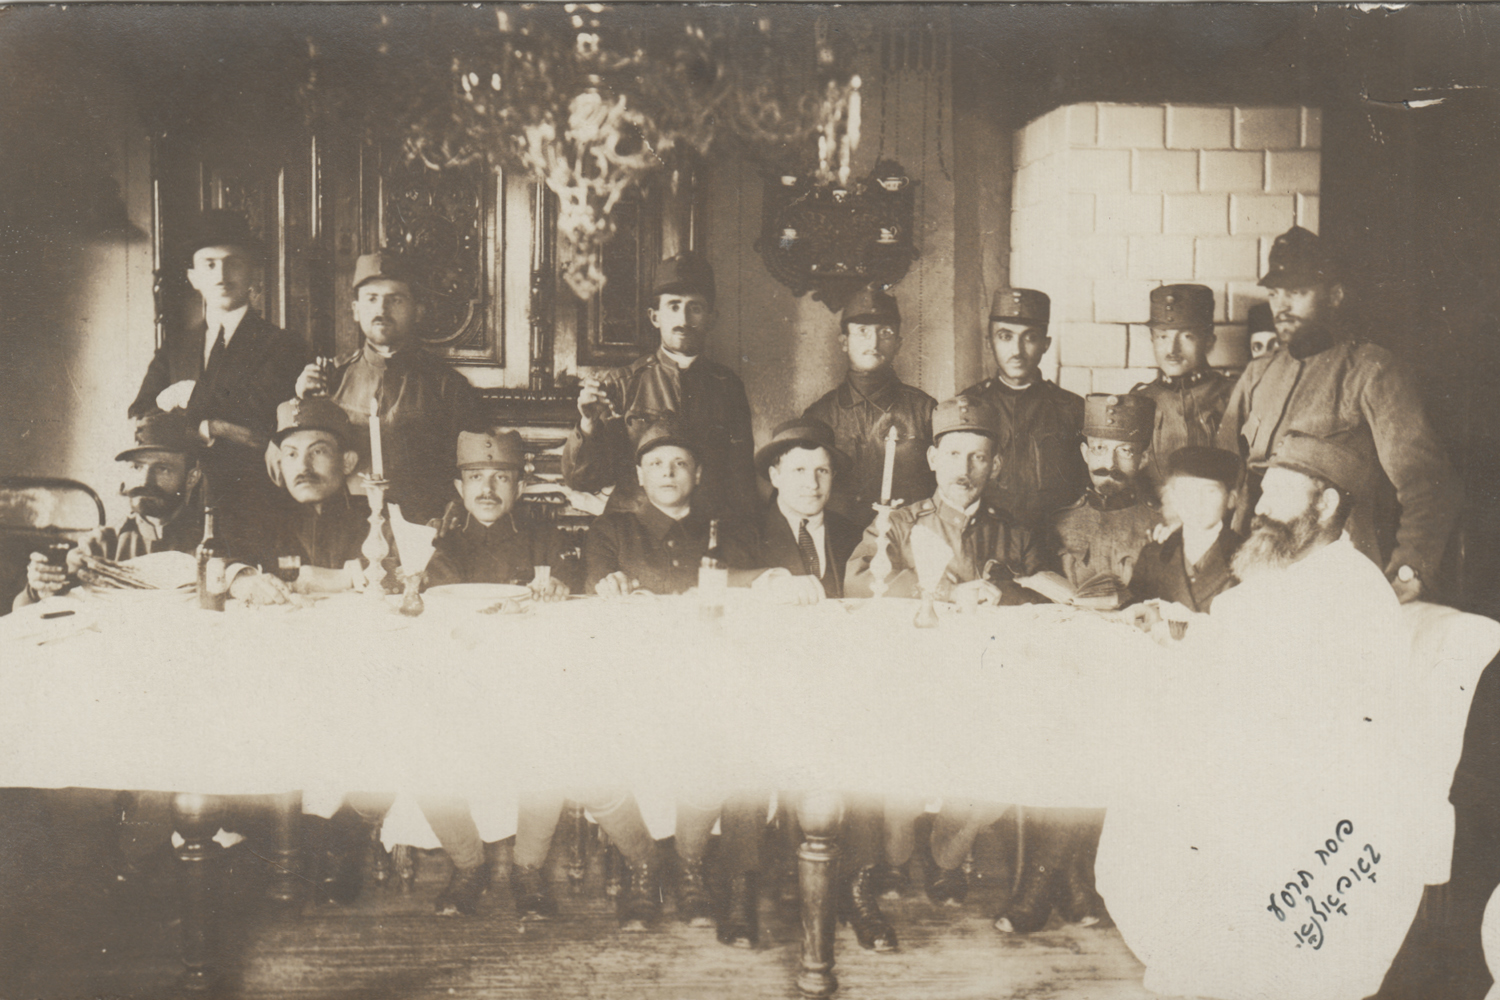 Photographic postcard of Austro-Hungarian soldiers celebrating Passover. 1917